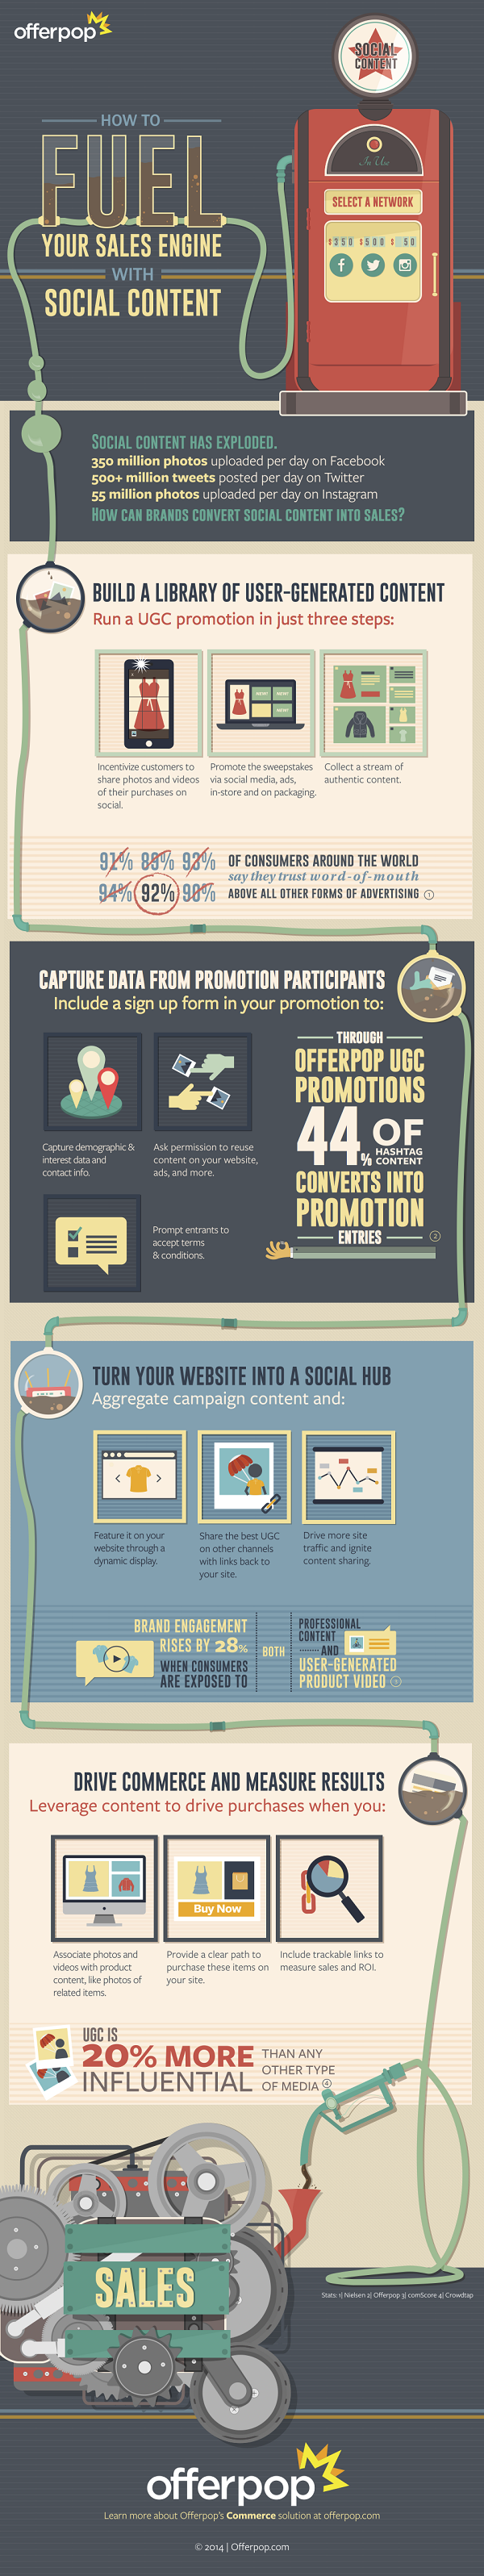 Fueling Your Sales Engine with Social Content #infographic